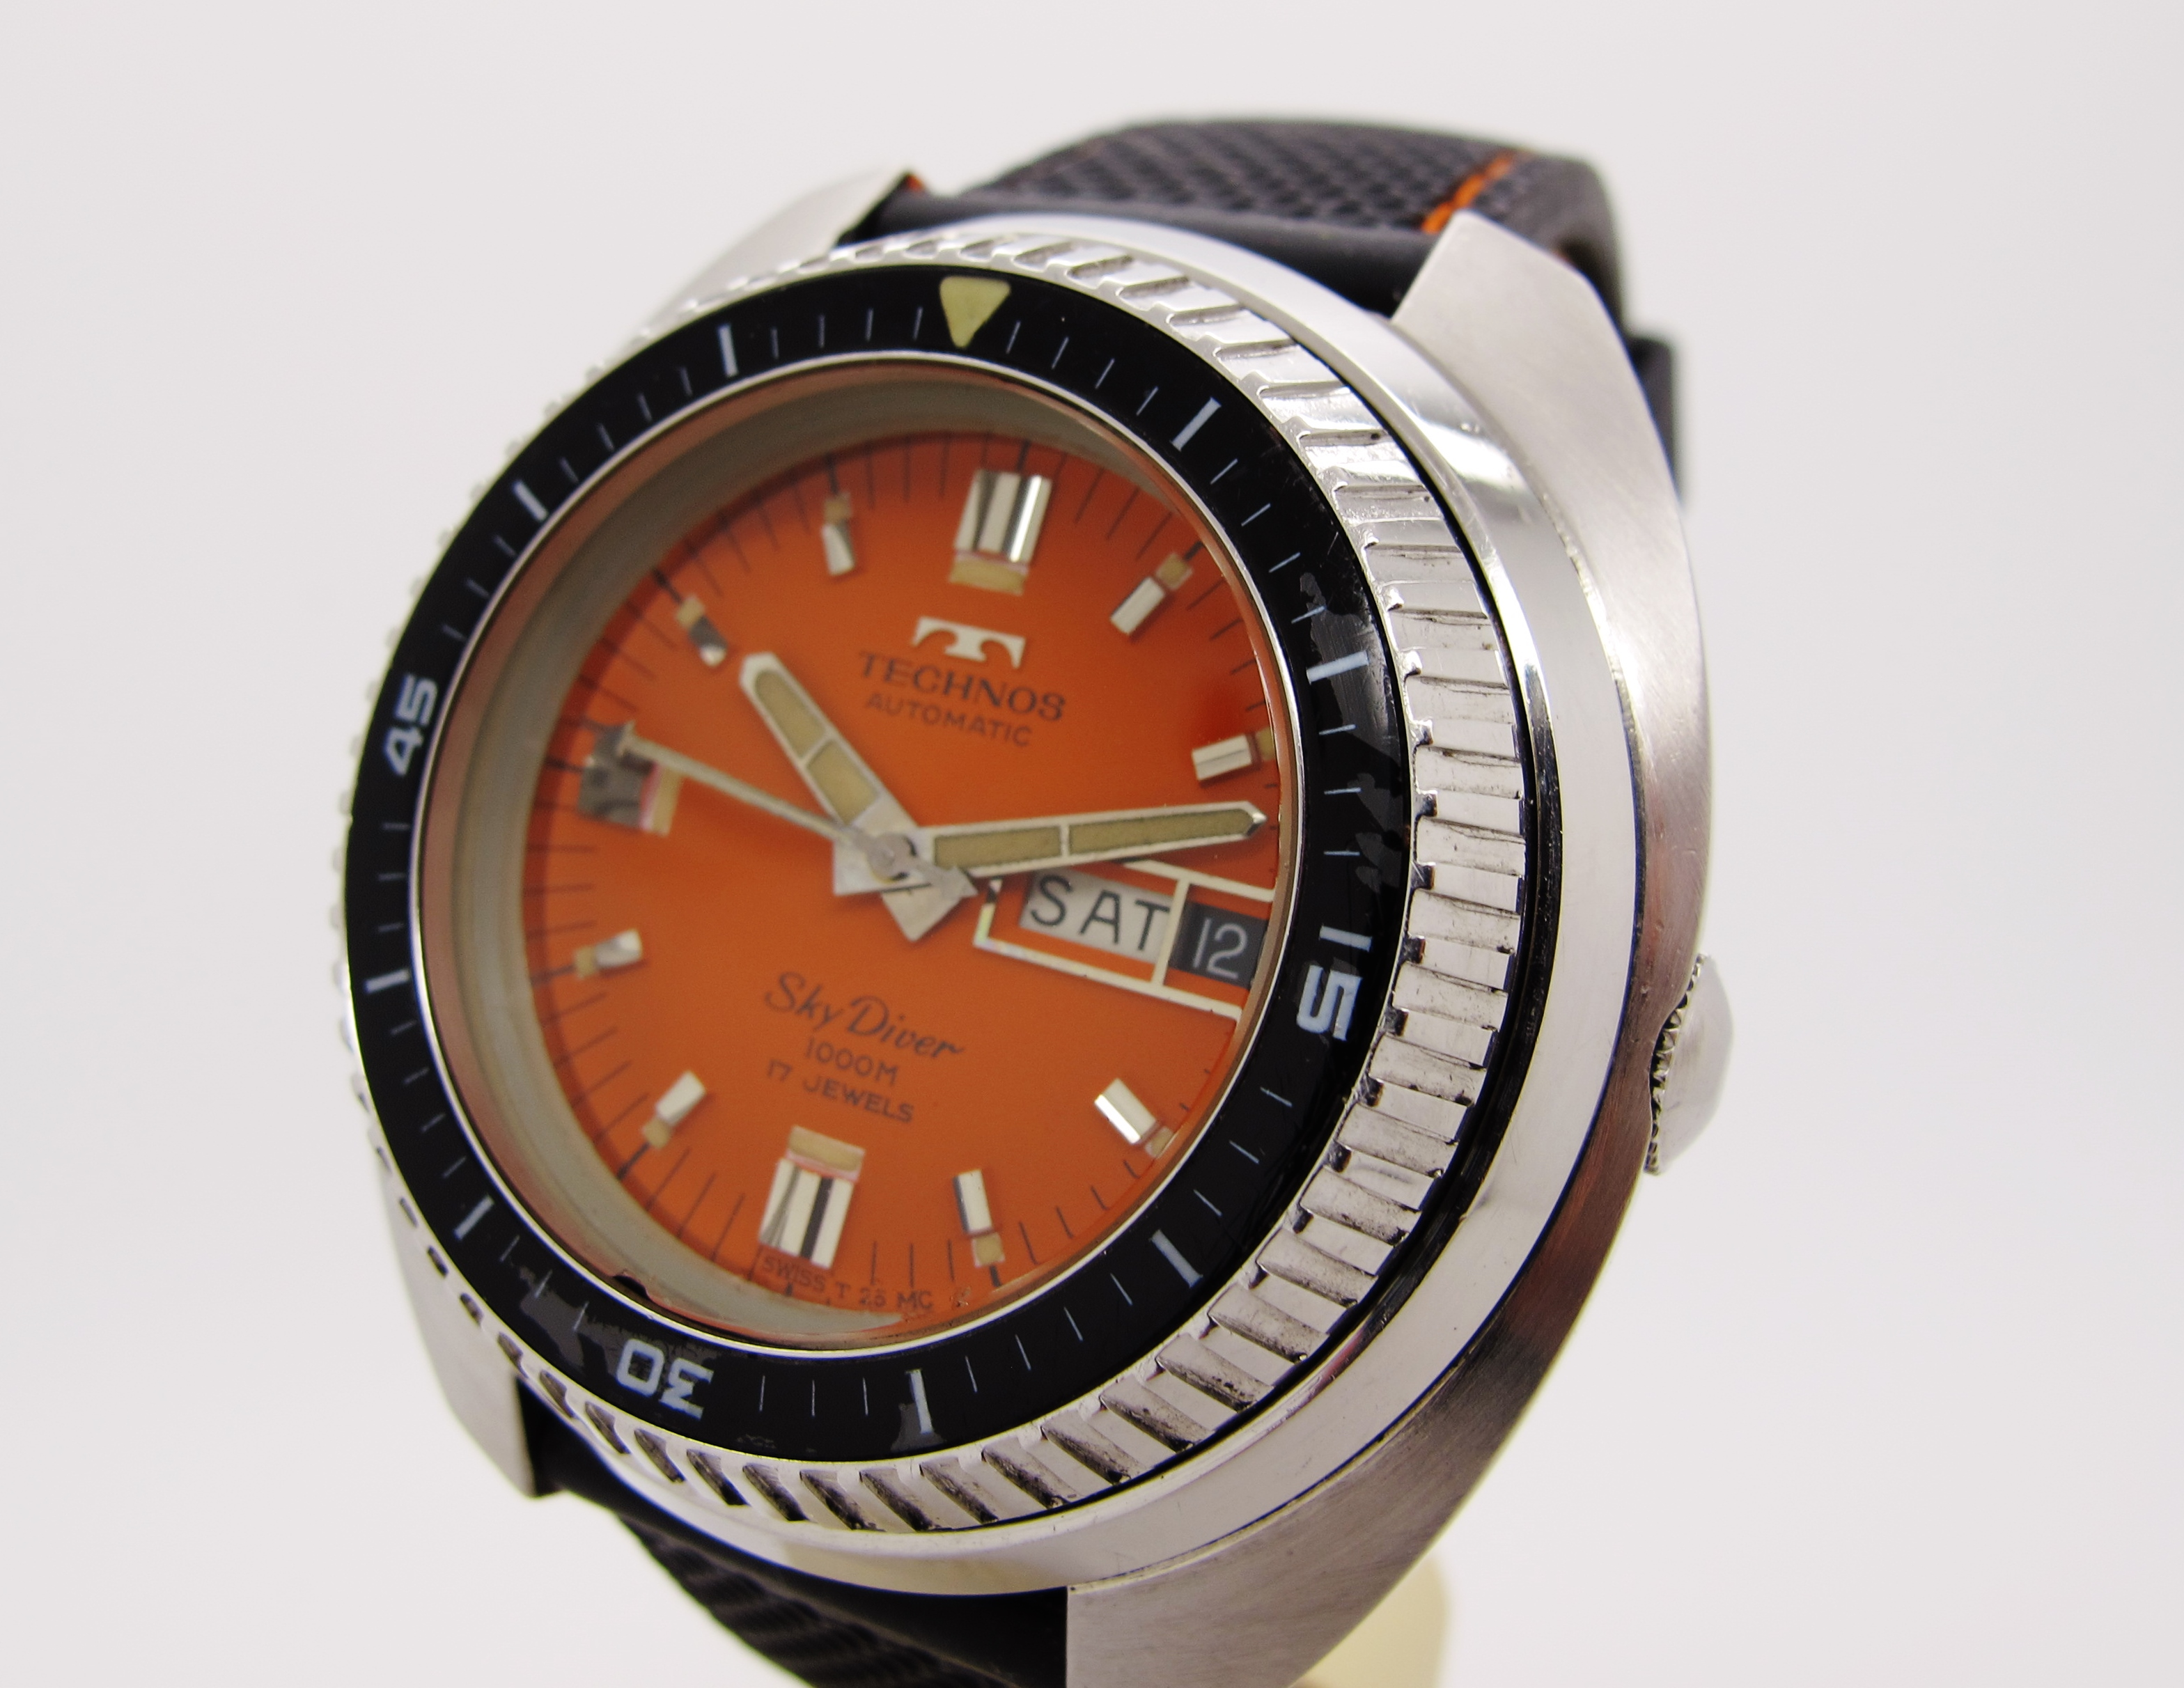 ... Watches Rolex Military Dive watch | Technos vintage SkyDiver 1000m